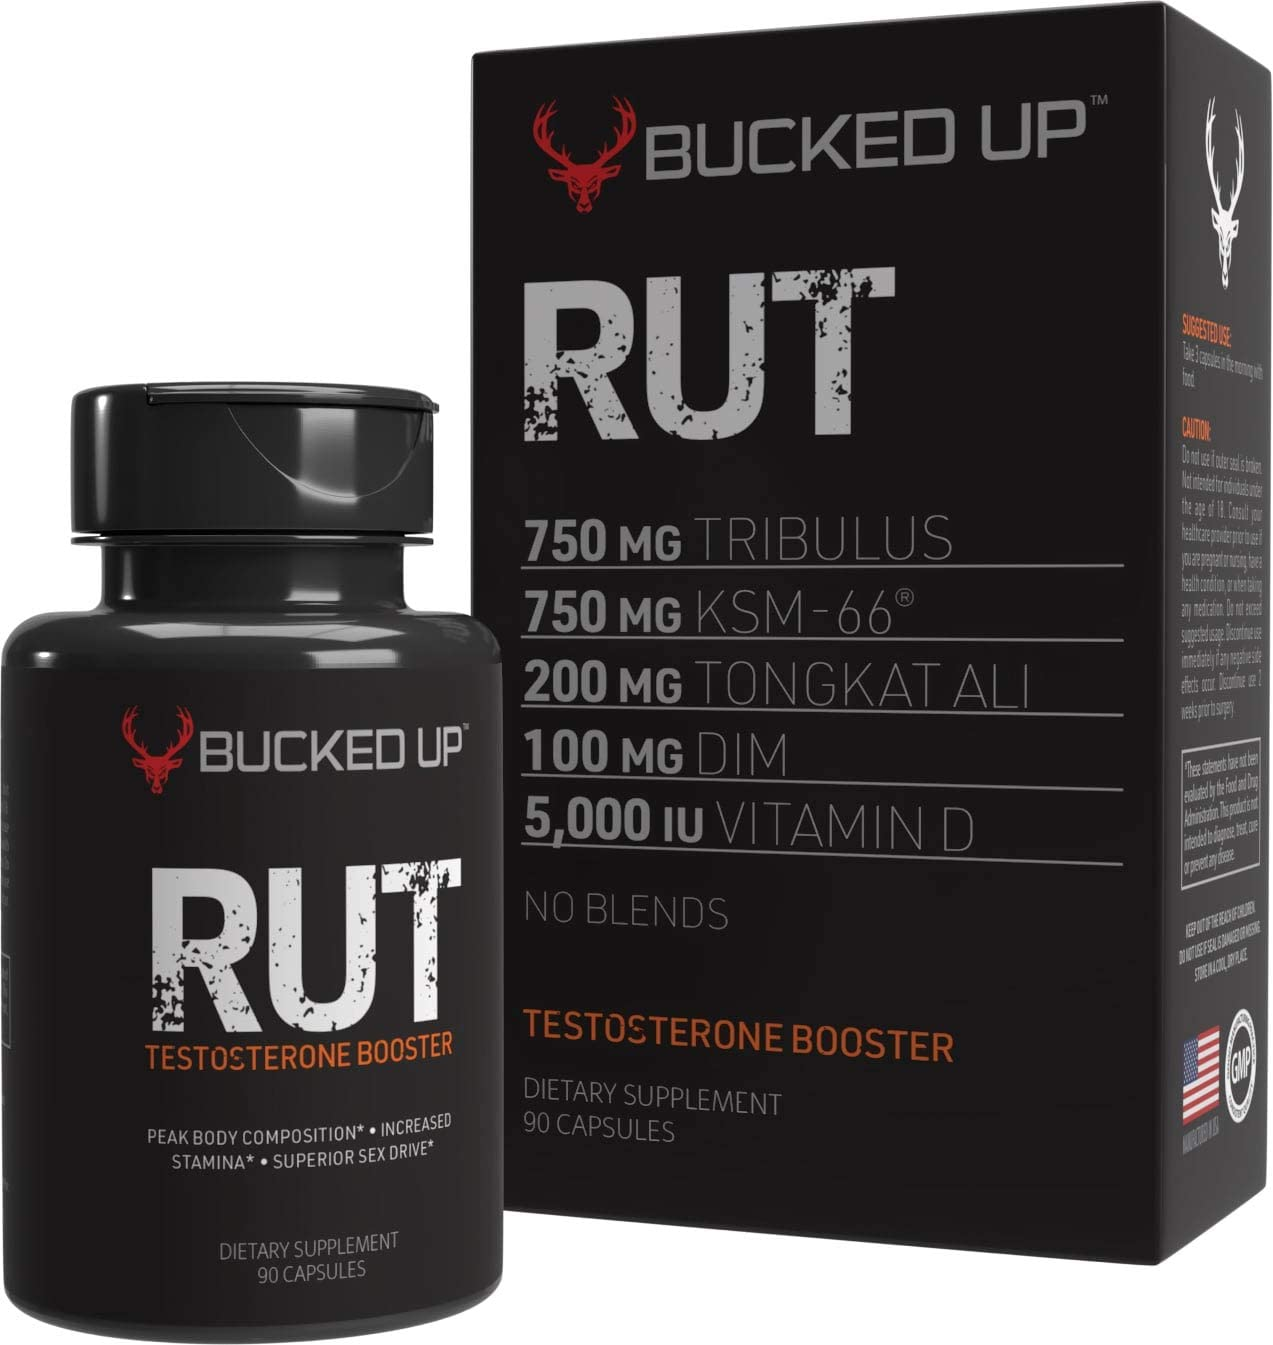 RUT – Testo Booster – Best All-Natural Test Formula for Men – Energy, Endurance, Strength, and Stamina Booster – Muscle Composition Aid – Male Supplements 90 Capsules Pills